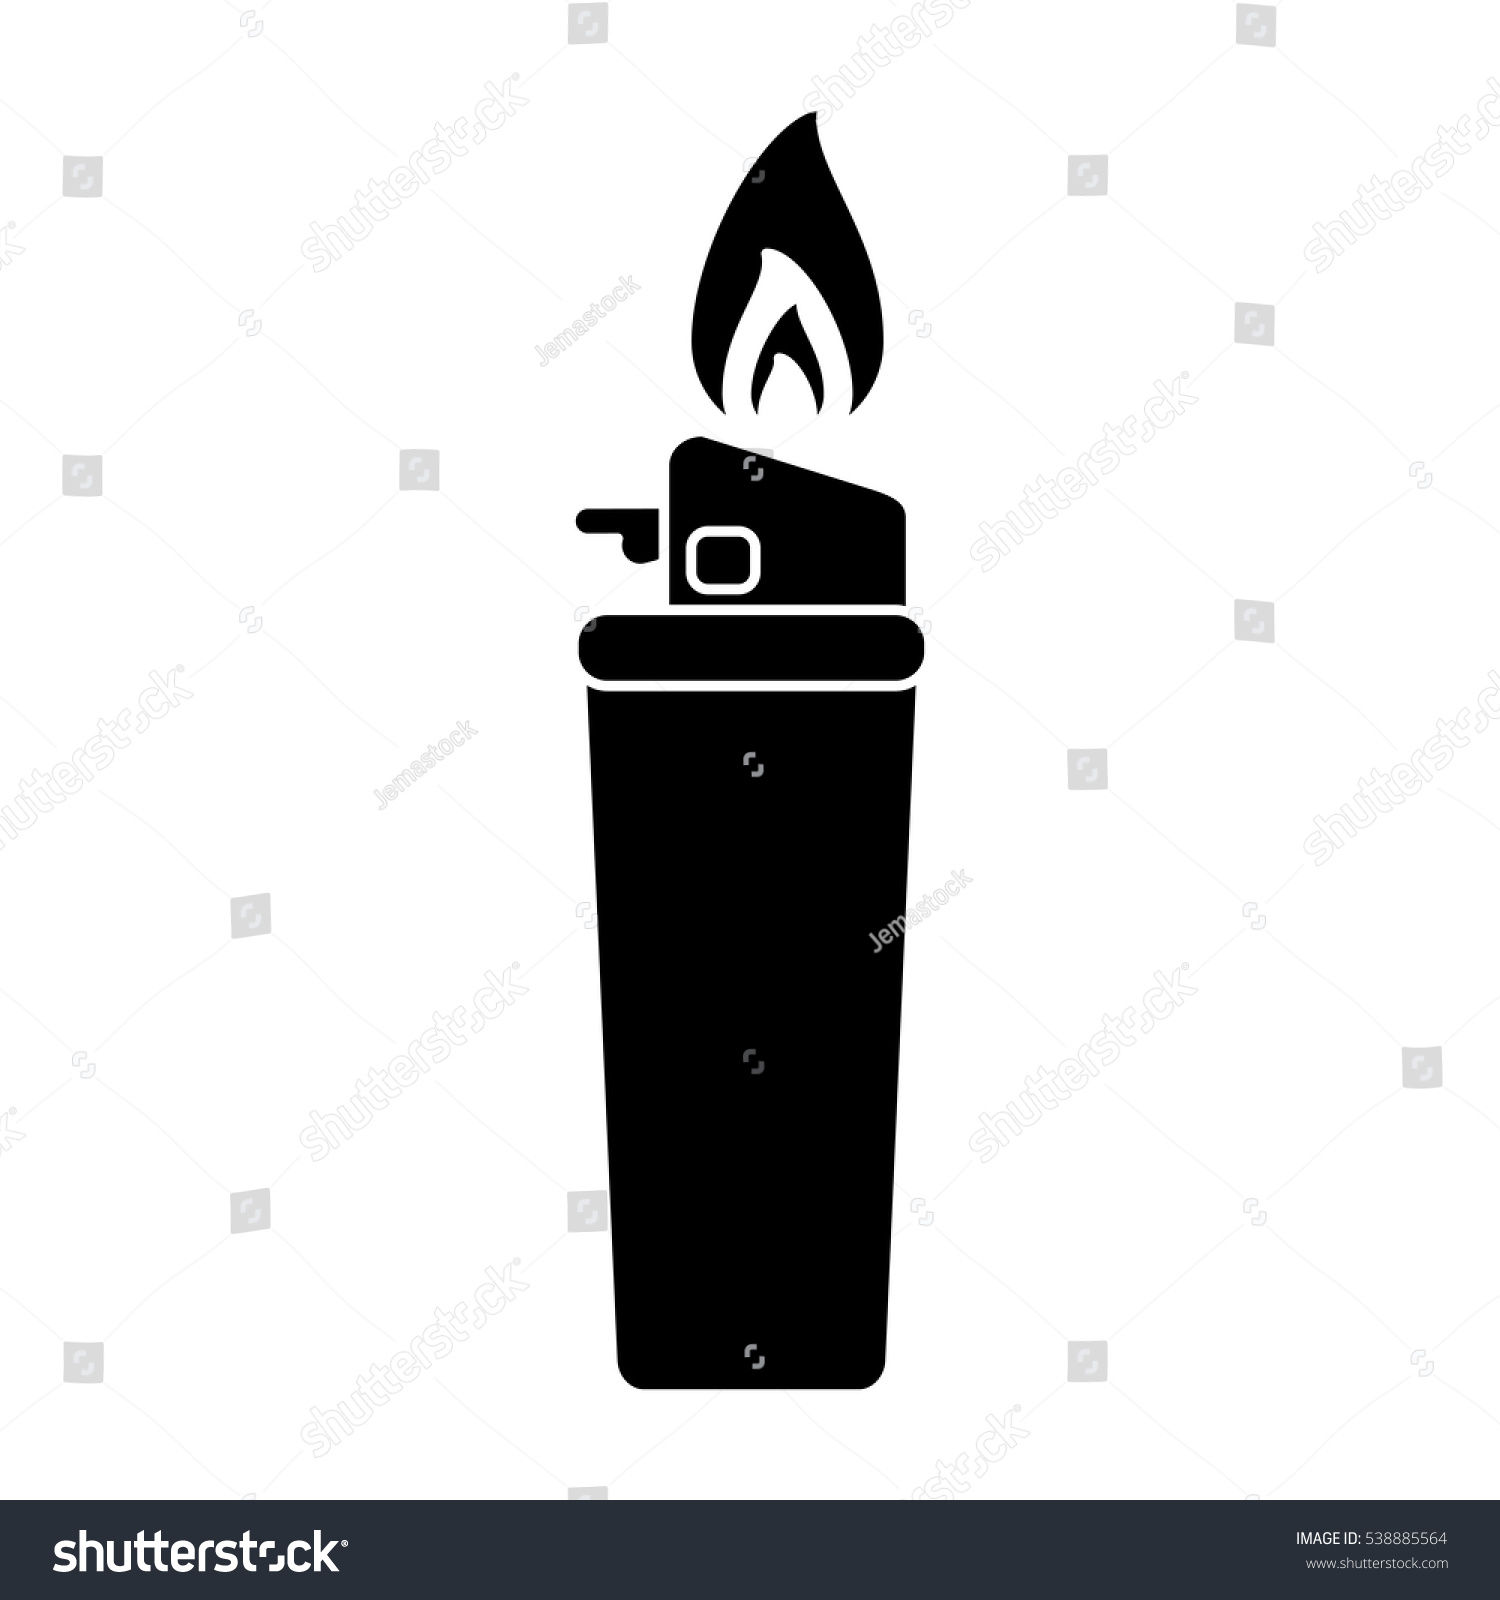 silhouette gas lighter flame icon stock vector 2018 538885564 rh shutterstock com